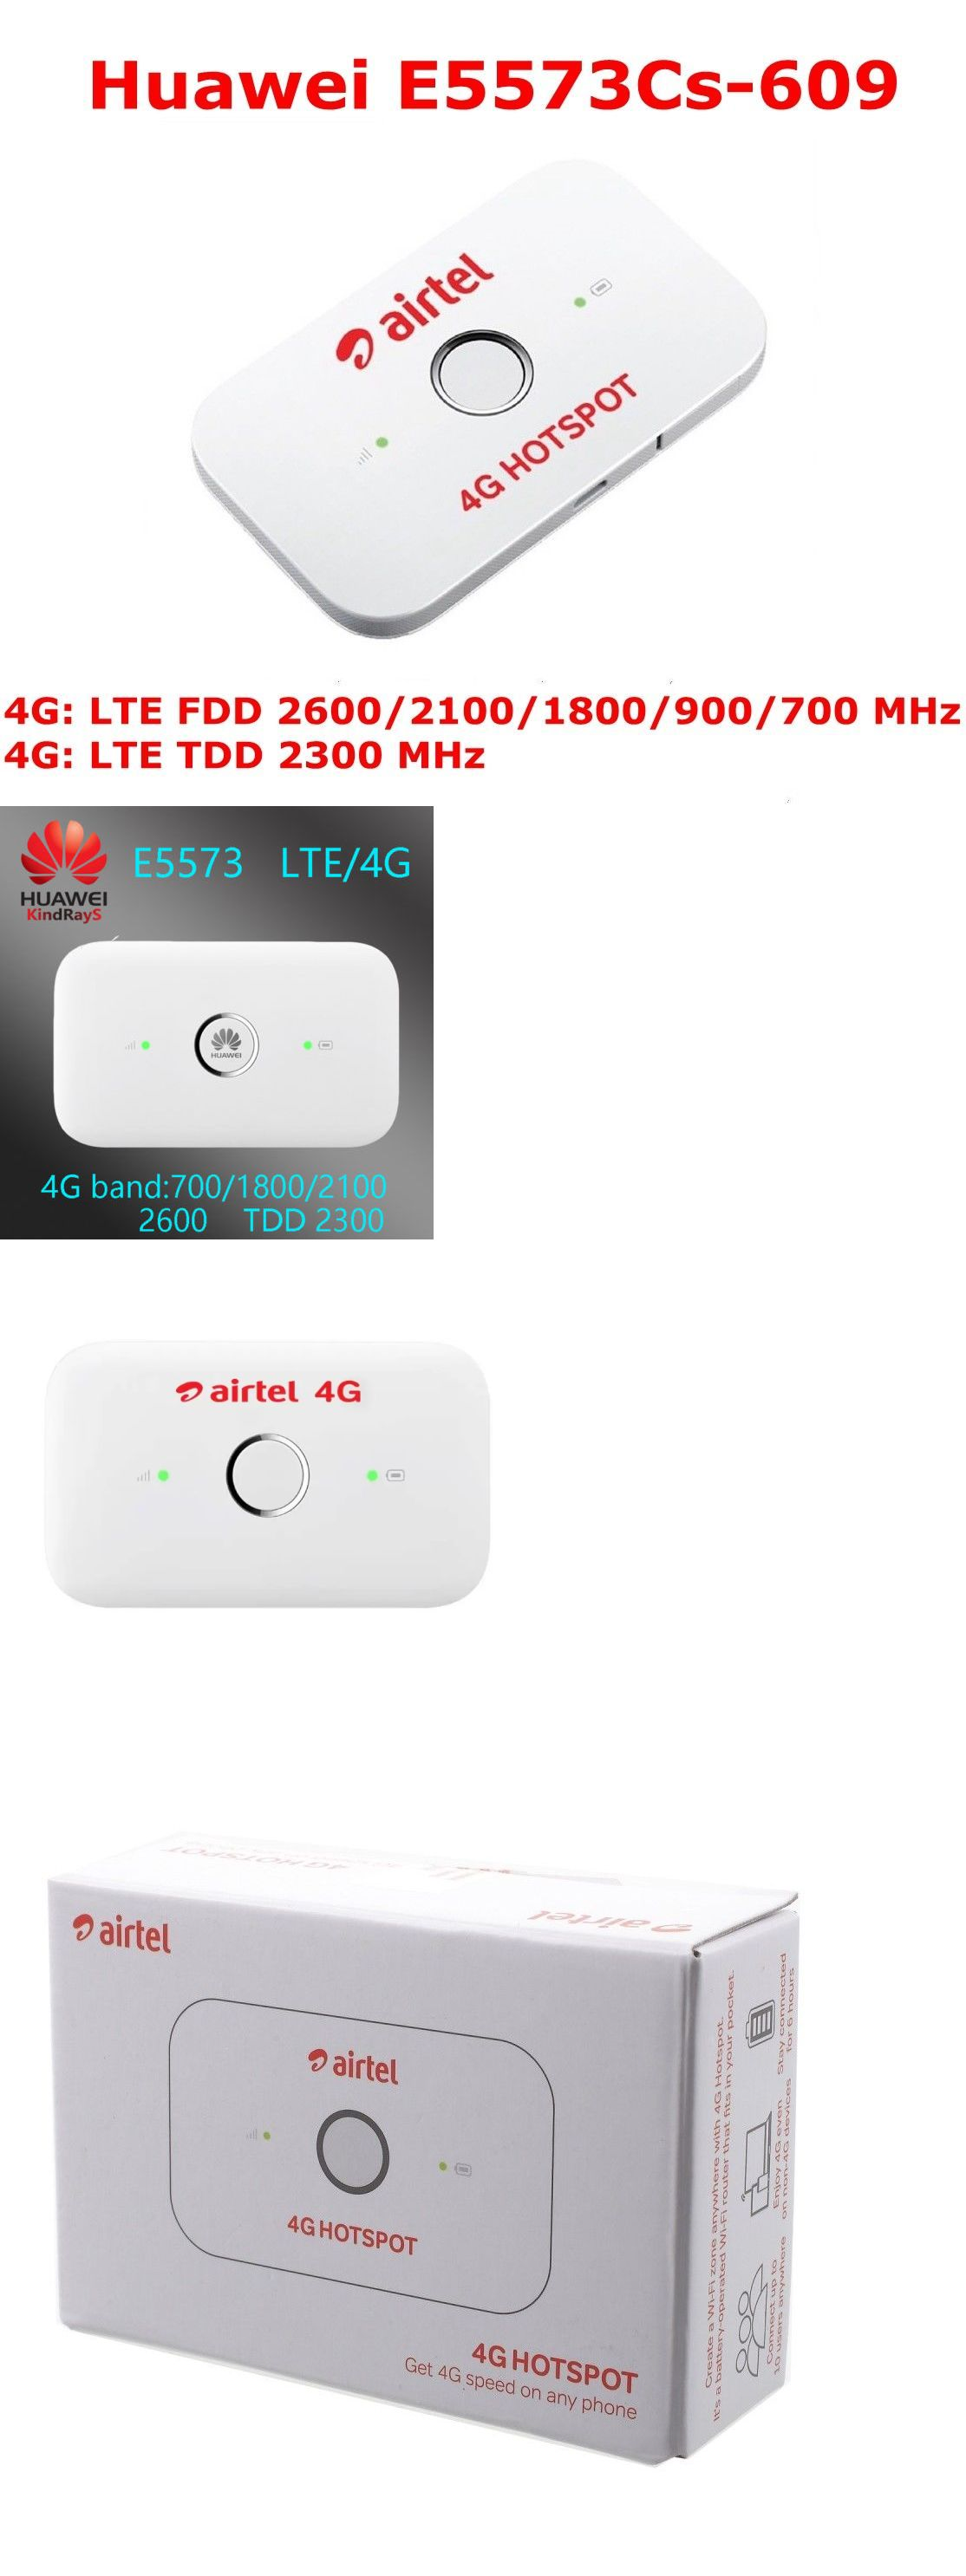 Mobile Broadband Devices 175710: Unlocked Huawei E5573s-609